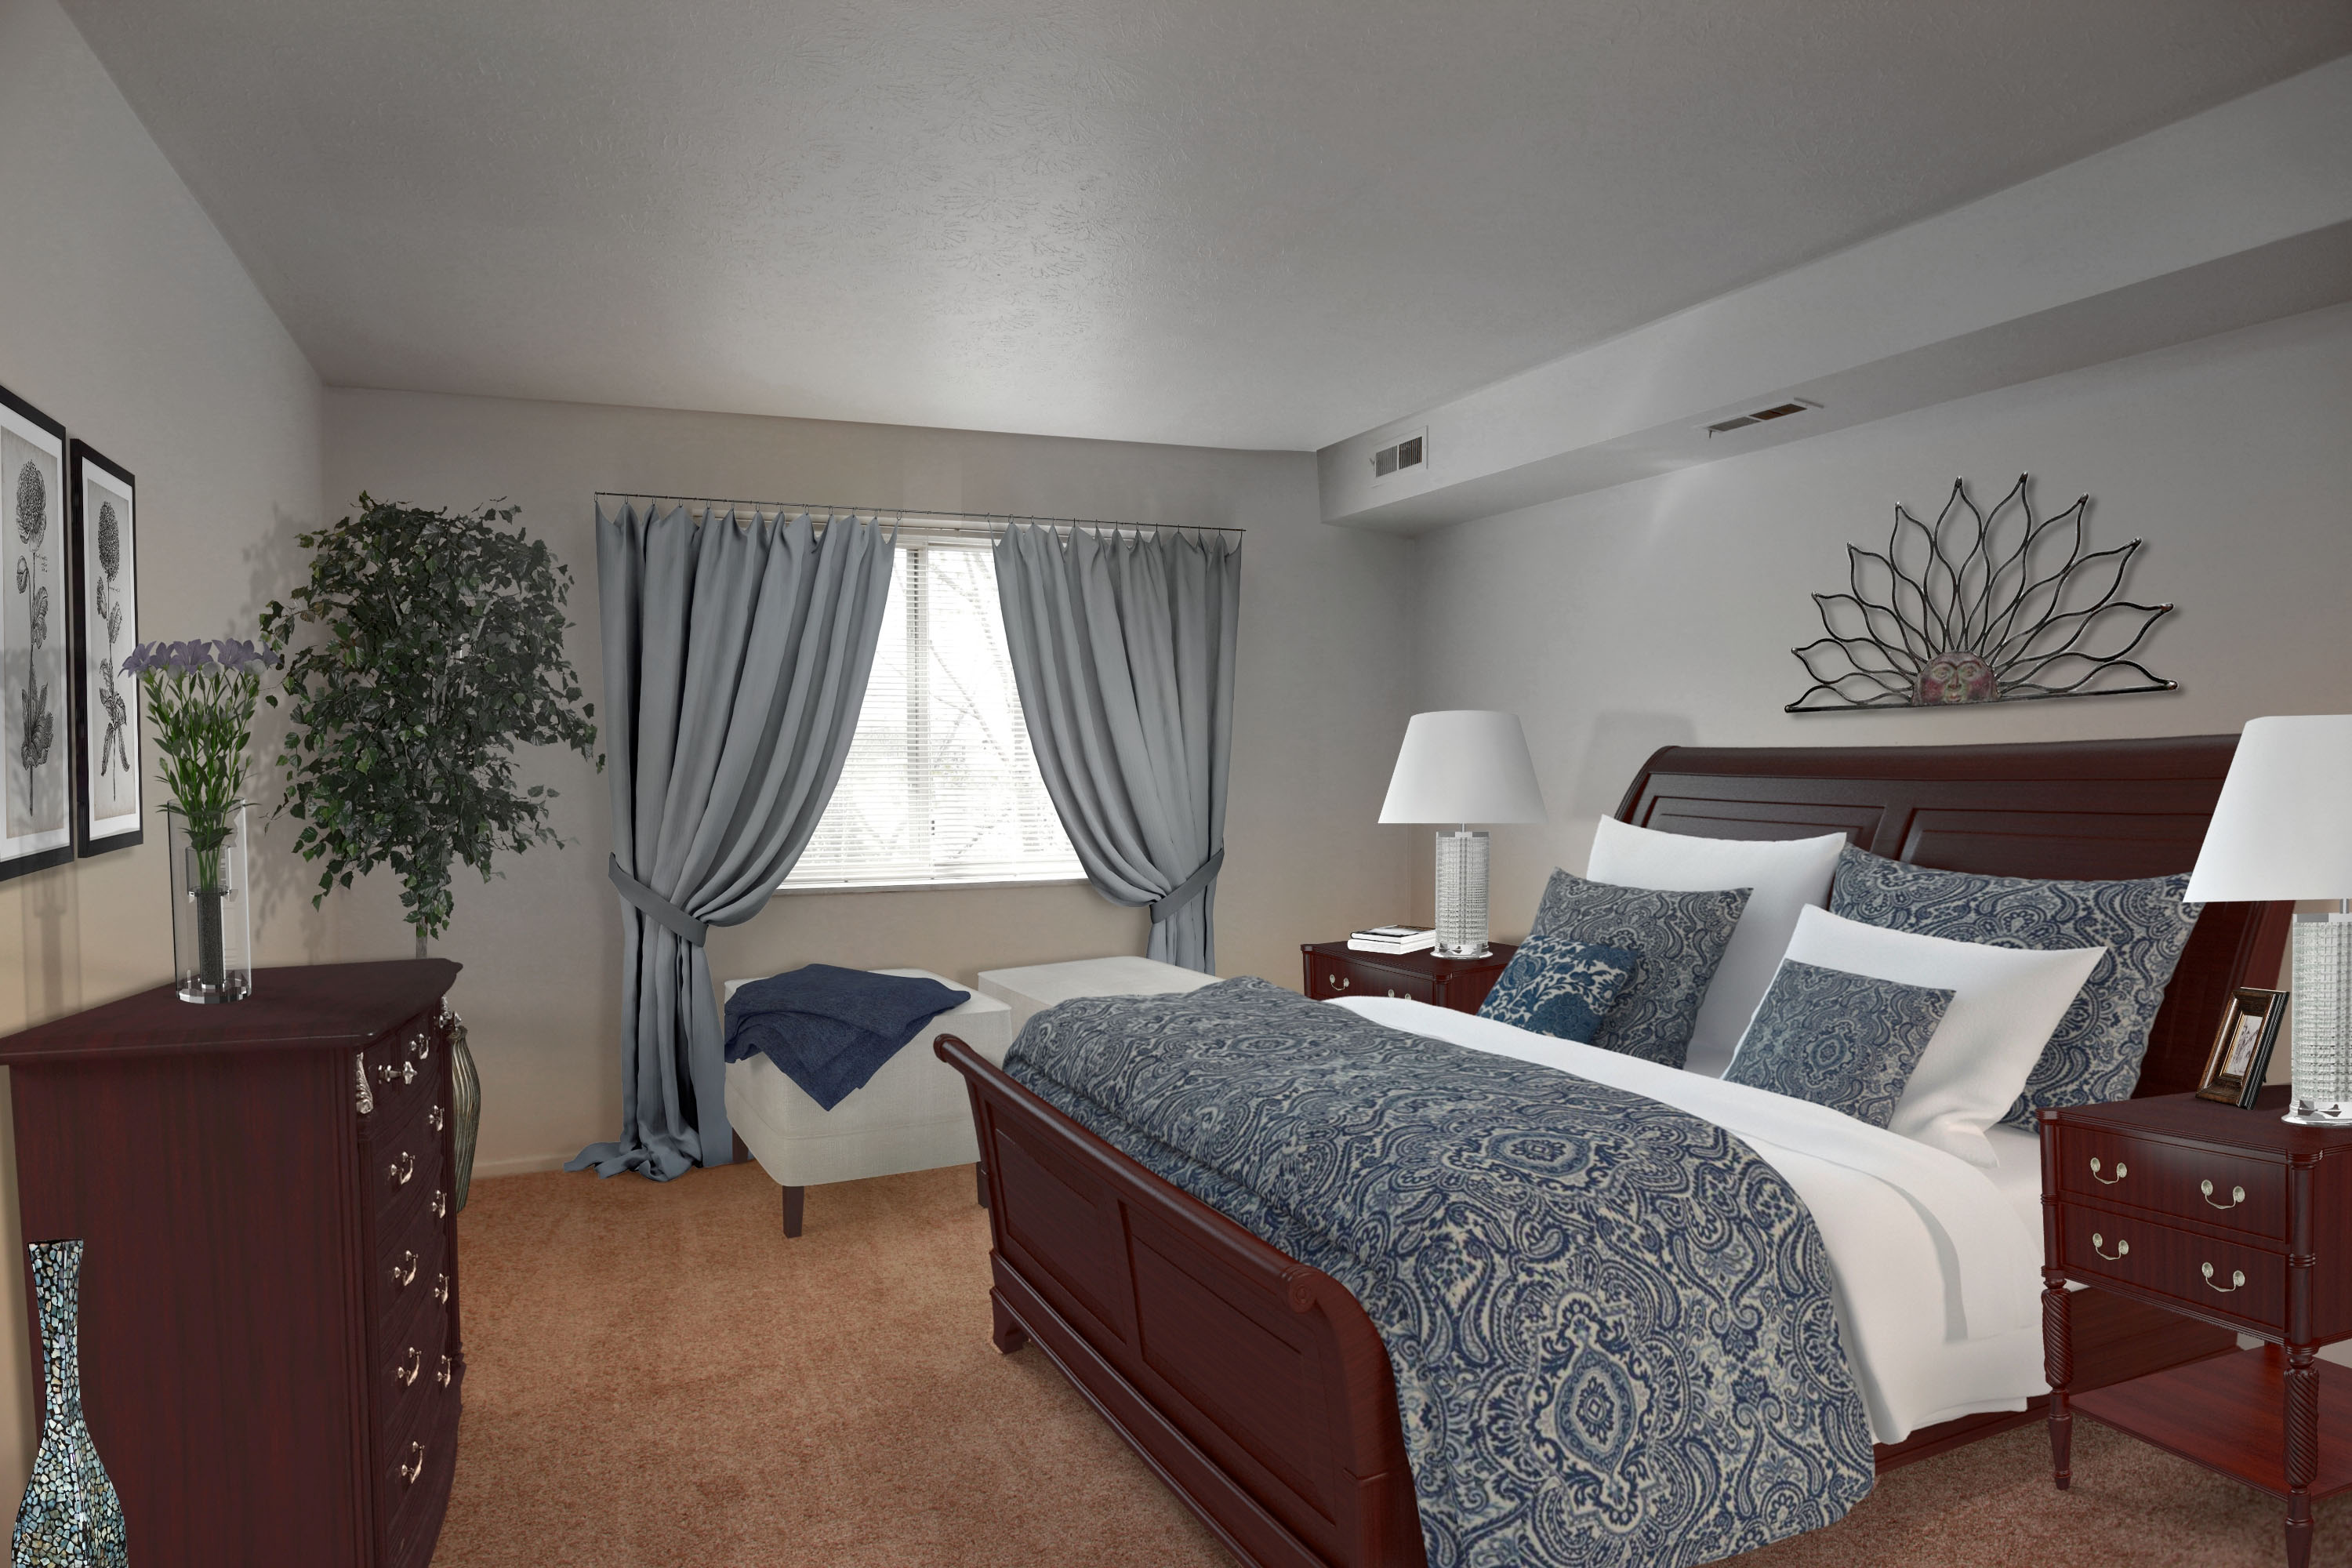 2A Bedroom #1 Furnished at the Greenridge on Euclid Apartments in Euclid, OH